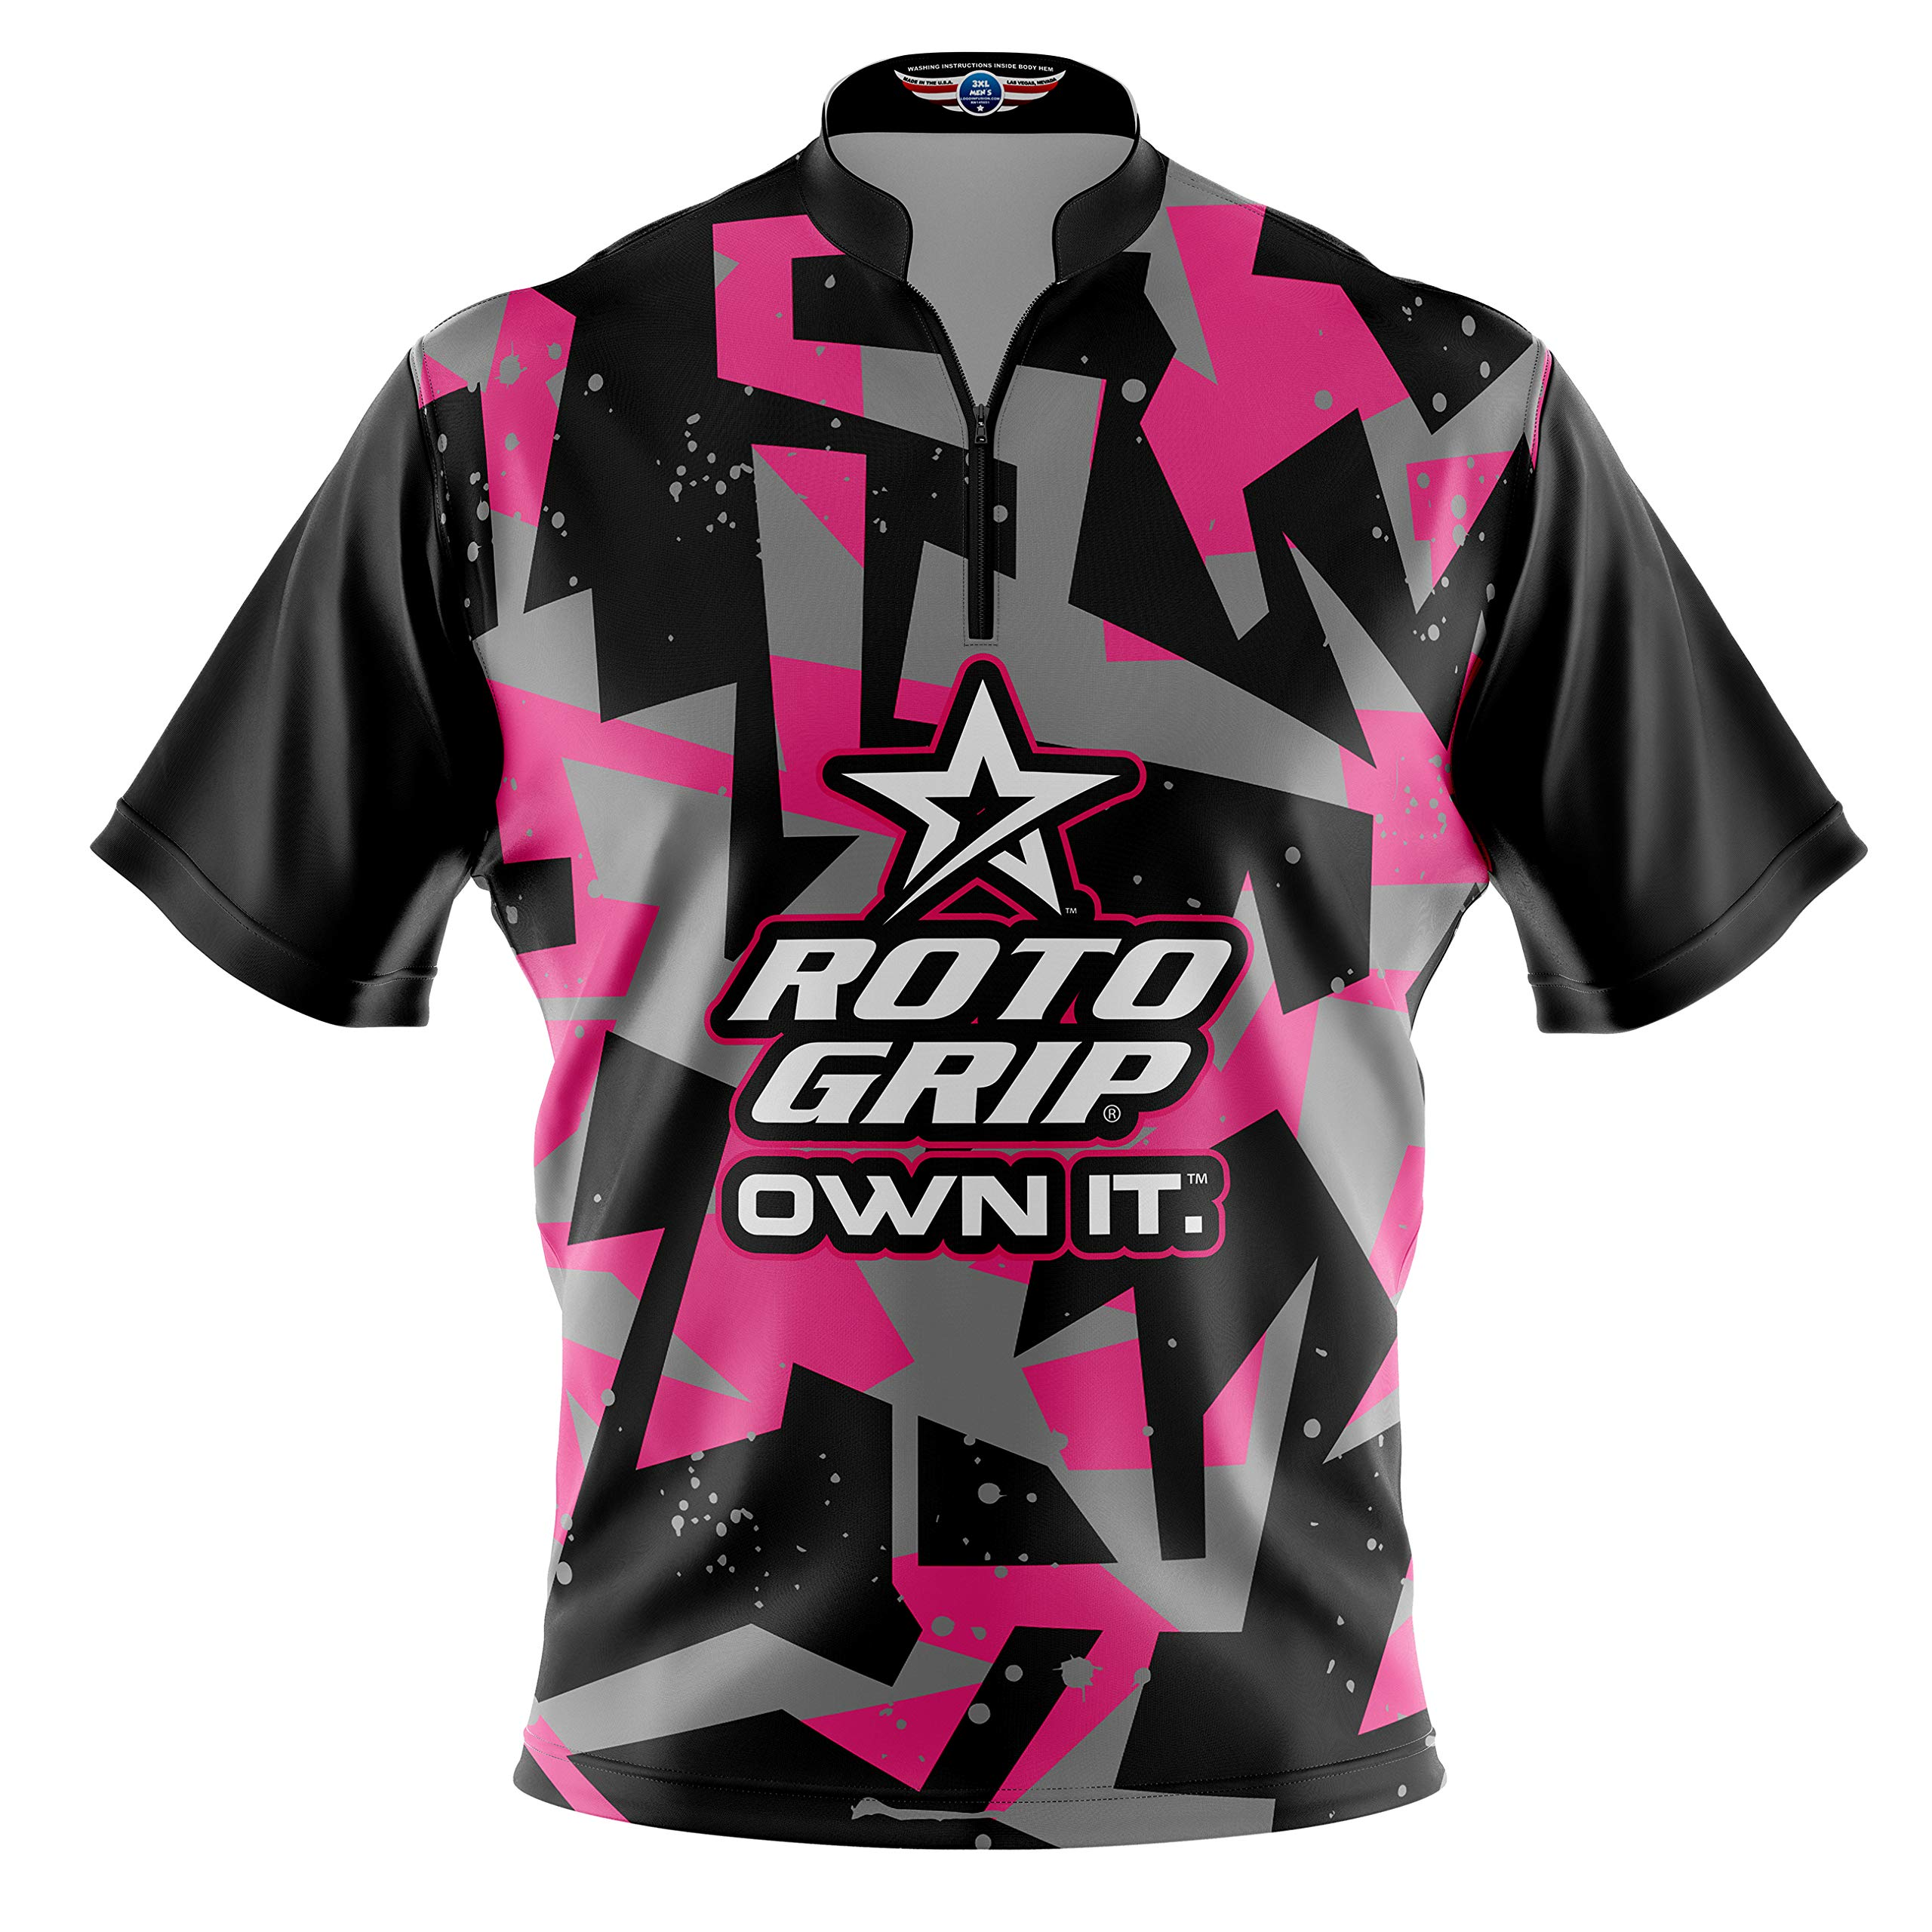 Logo Infusion Bowling Dye-Sublimated Jersey (Sash Collar) - Roto Grip Style 0362 - Sizes S-3XL (3XL)